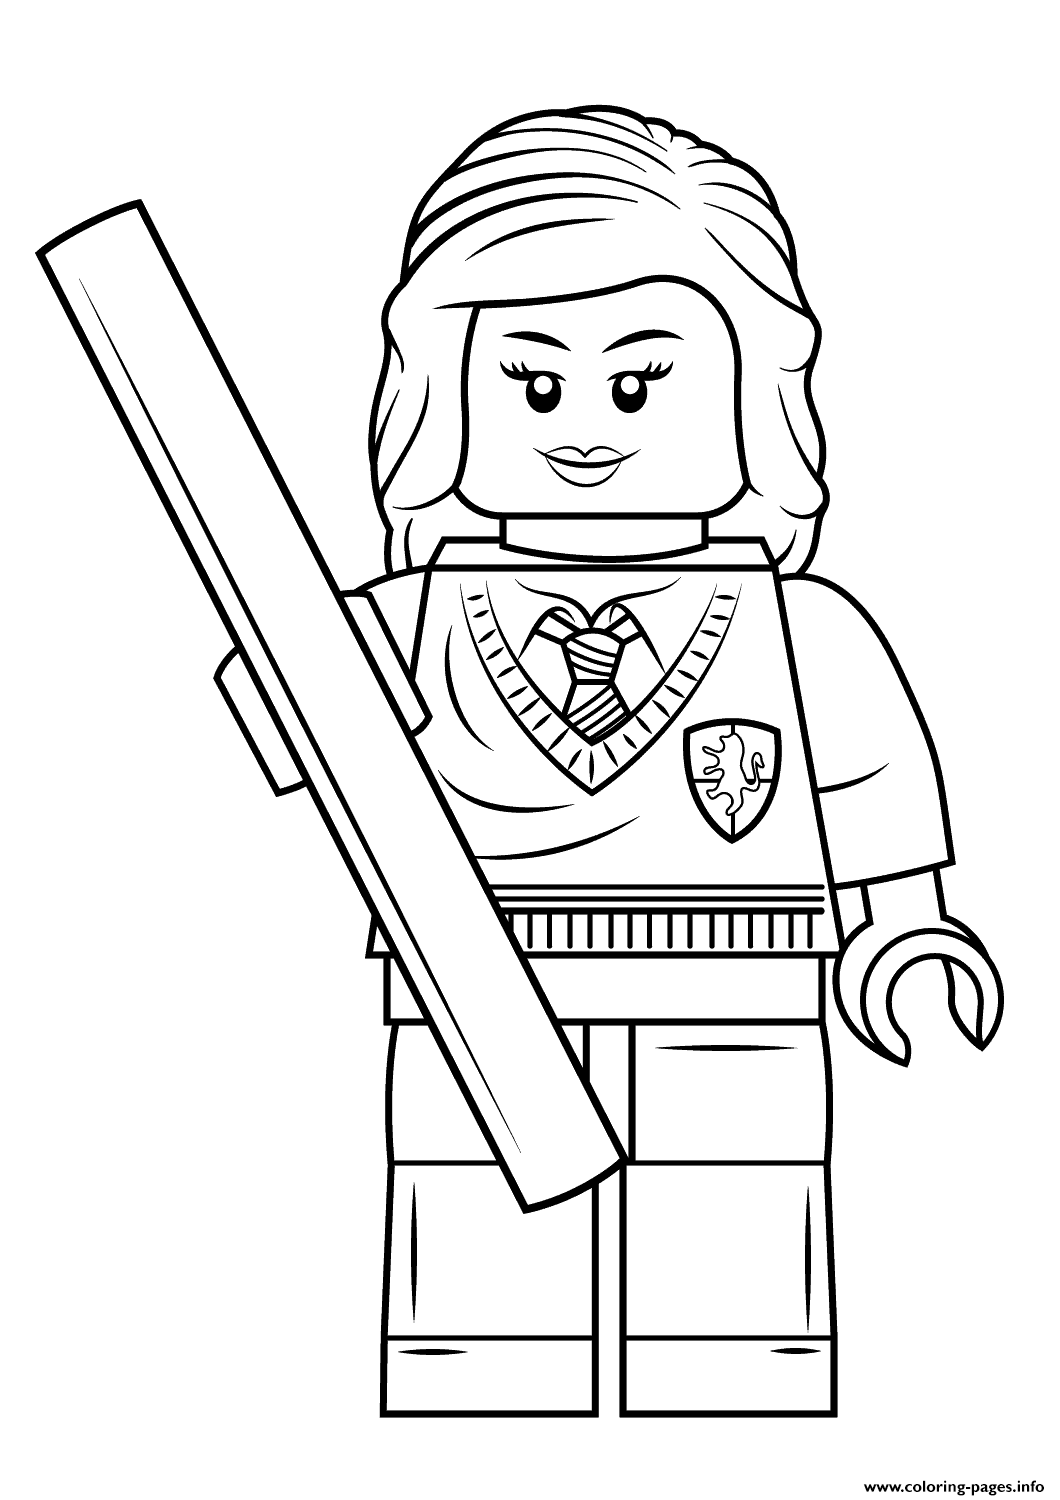 harry potter coloring pages pdf | Print Lego Hermione Granger Harry Potter Coloring Pages ...